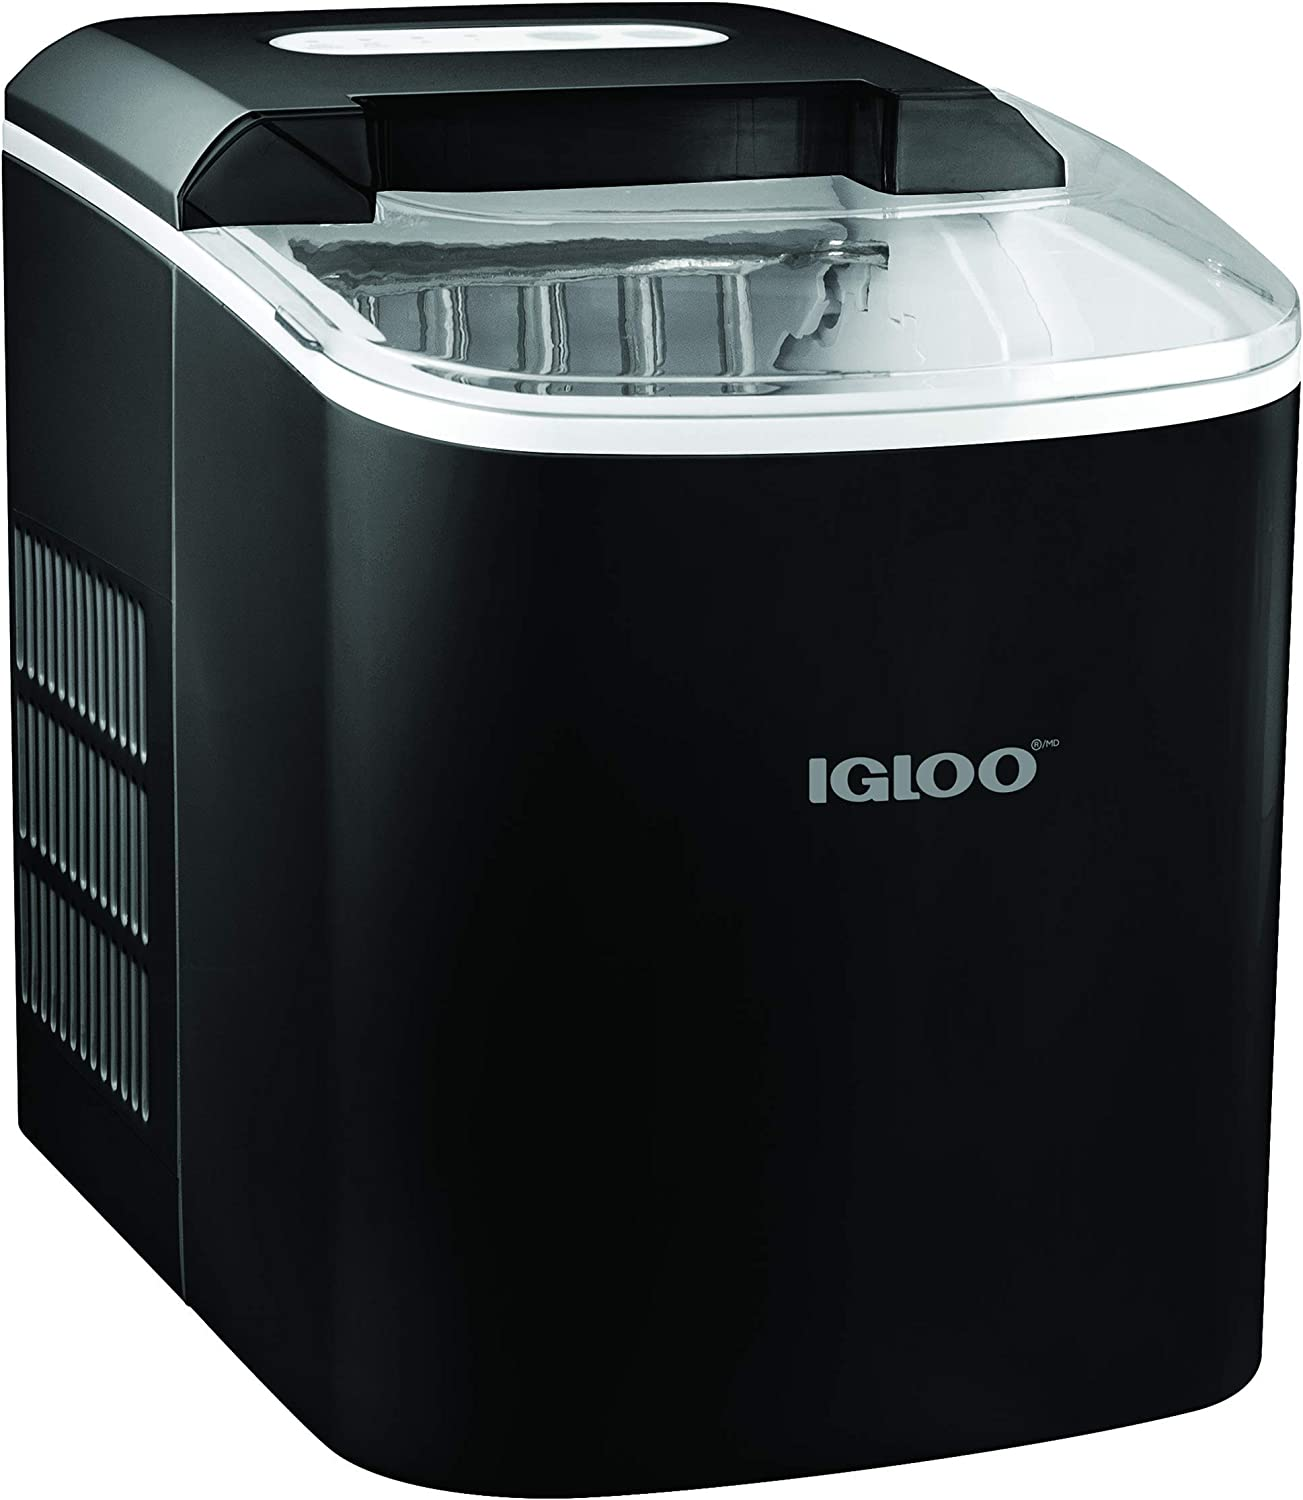 Igloo ICEB26BK Automatic Portable Electric Countertop Ice Maker